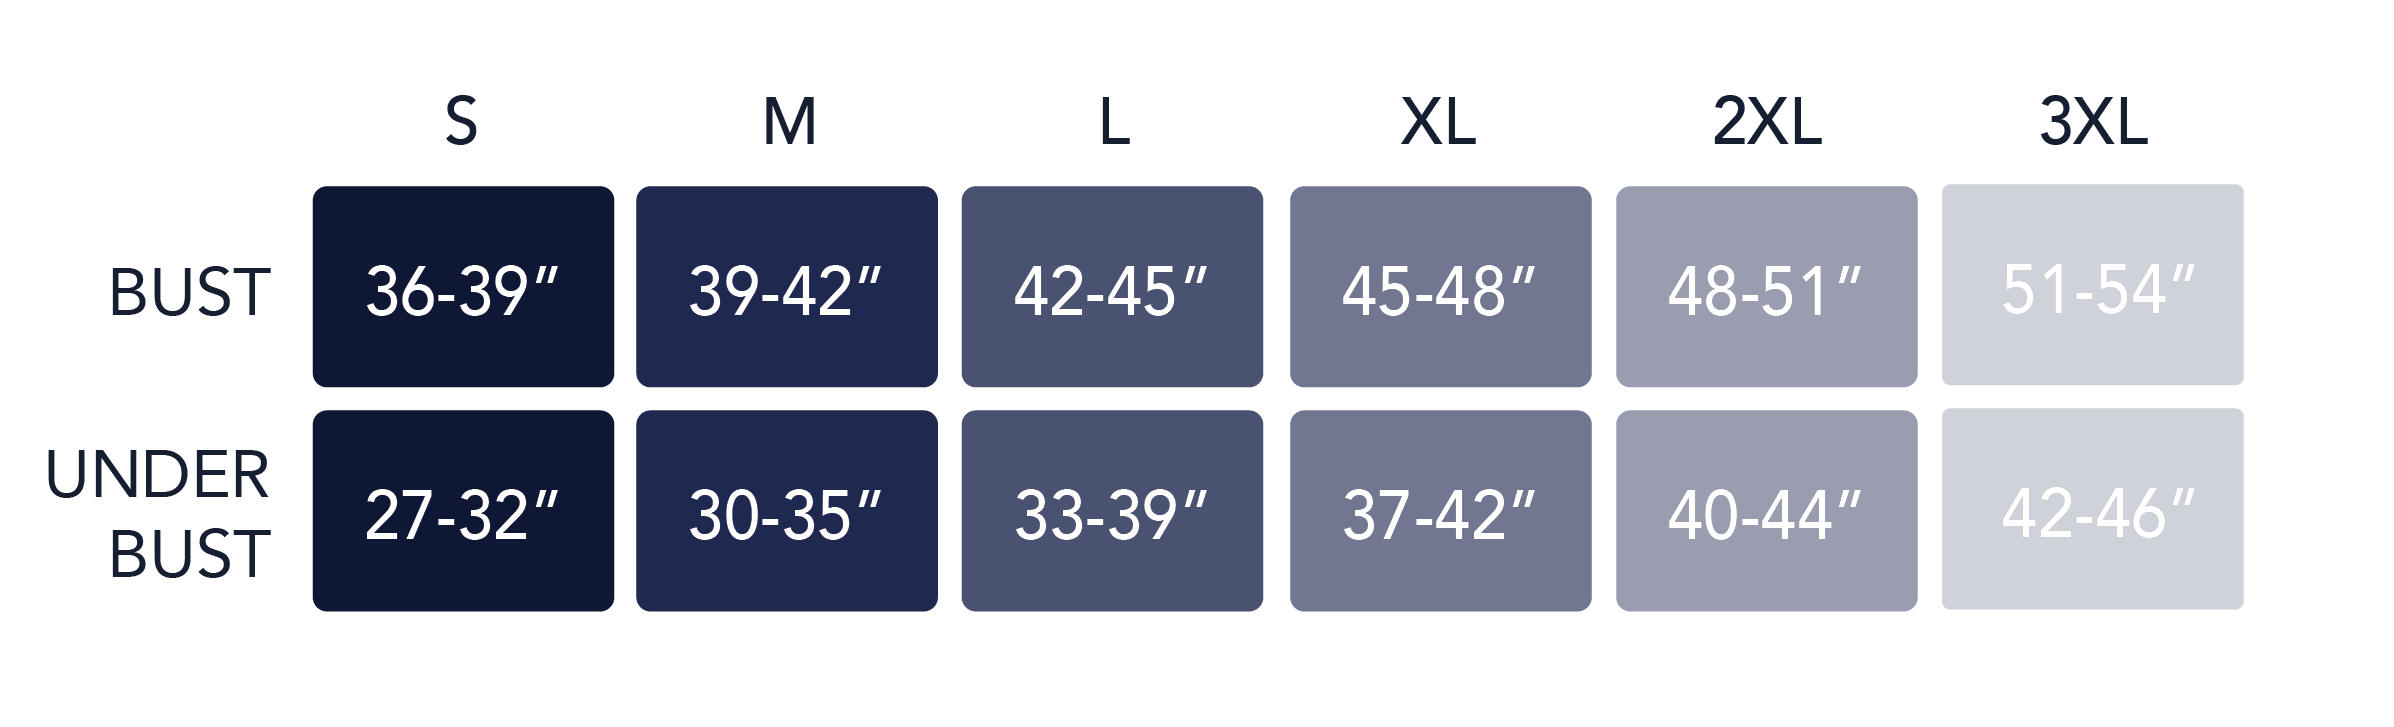 Defy Bra measurement chart